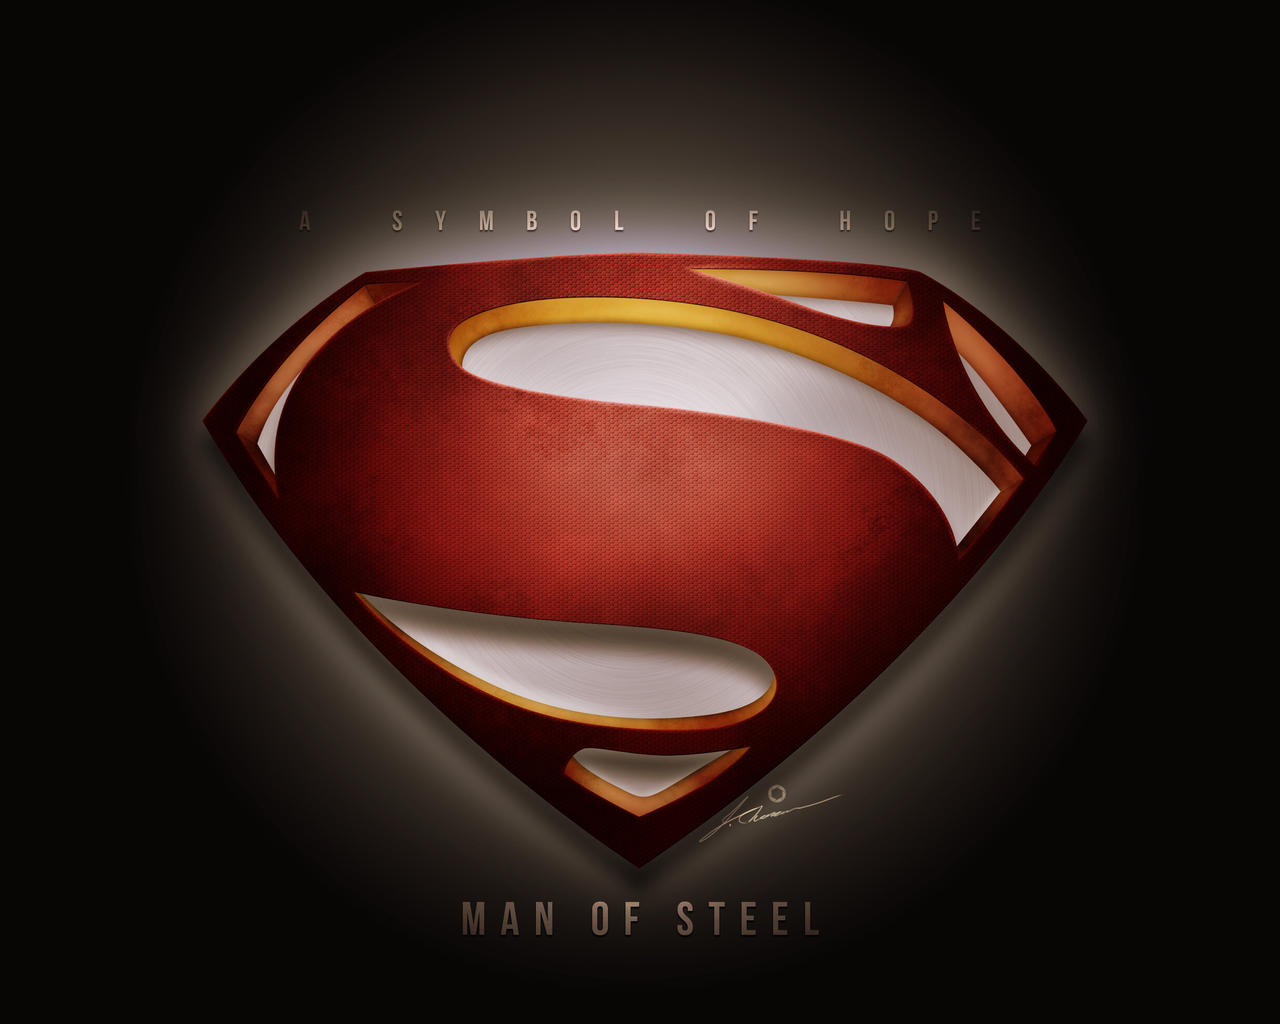 a symbol of hope man of steel fan poster by imagesix on